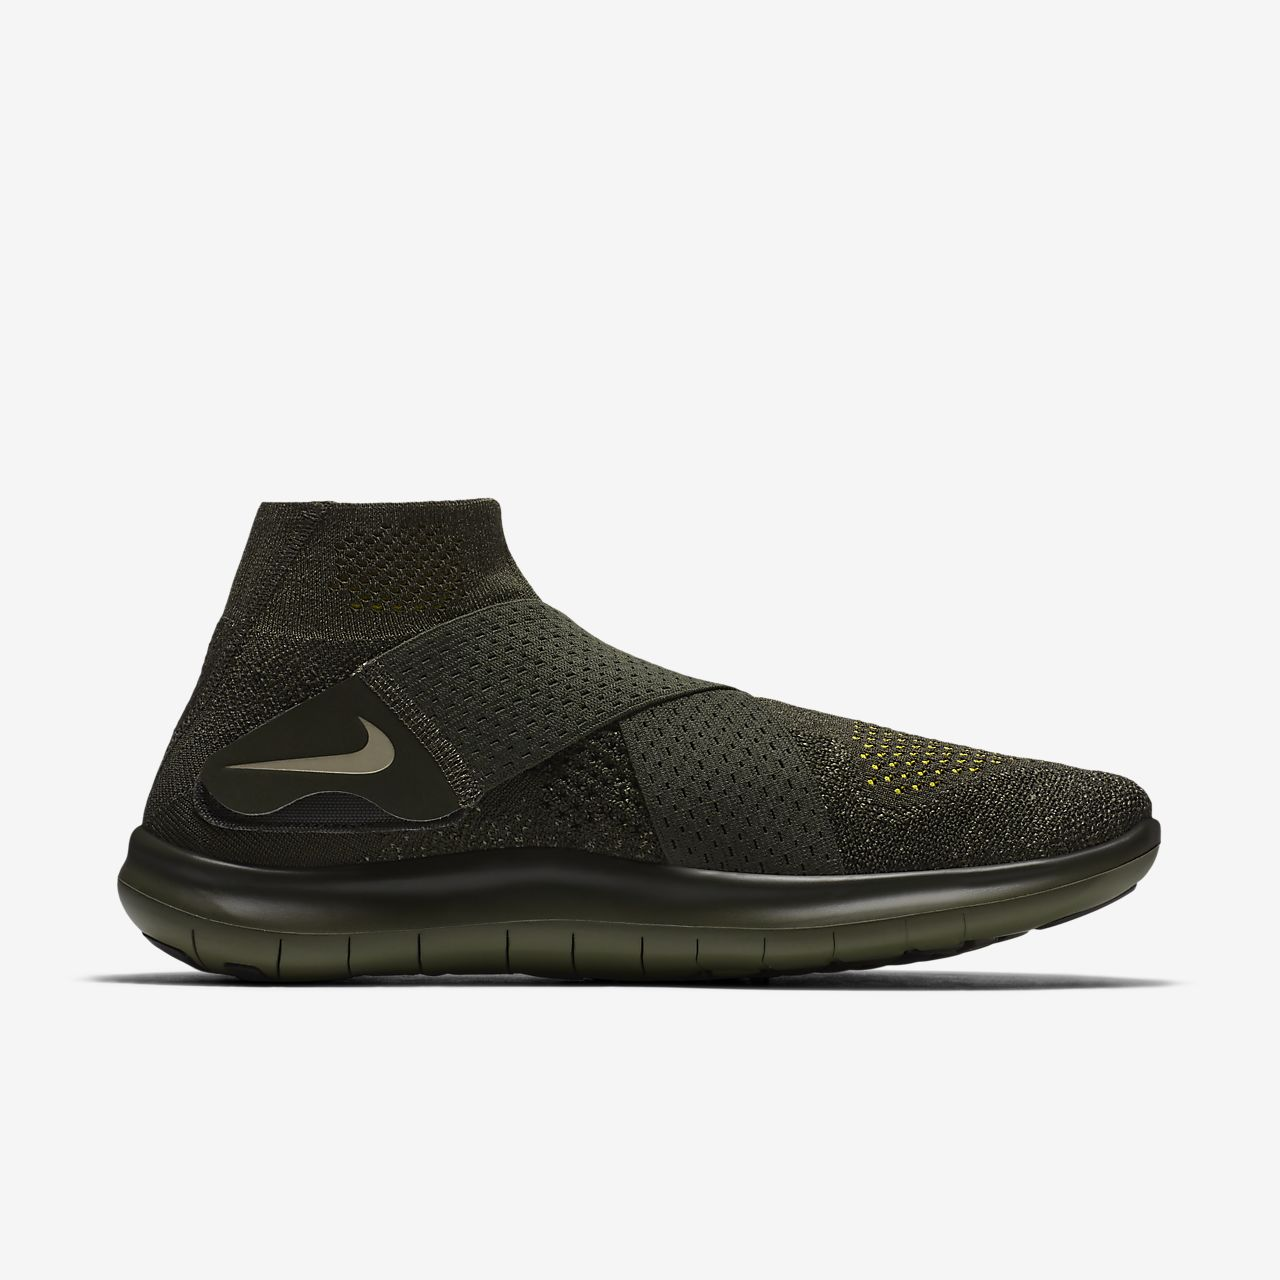 ... Chaussure de running Nike Free RN Motion Flyknit 2017 pour Homme